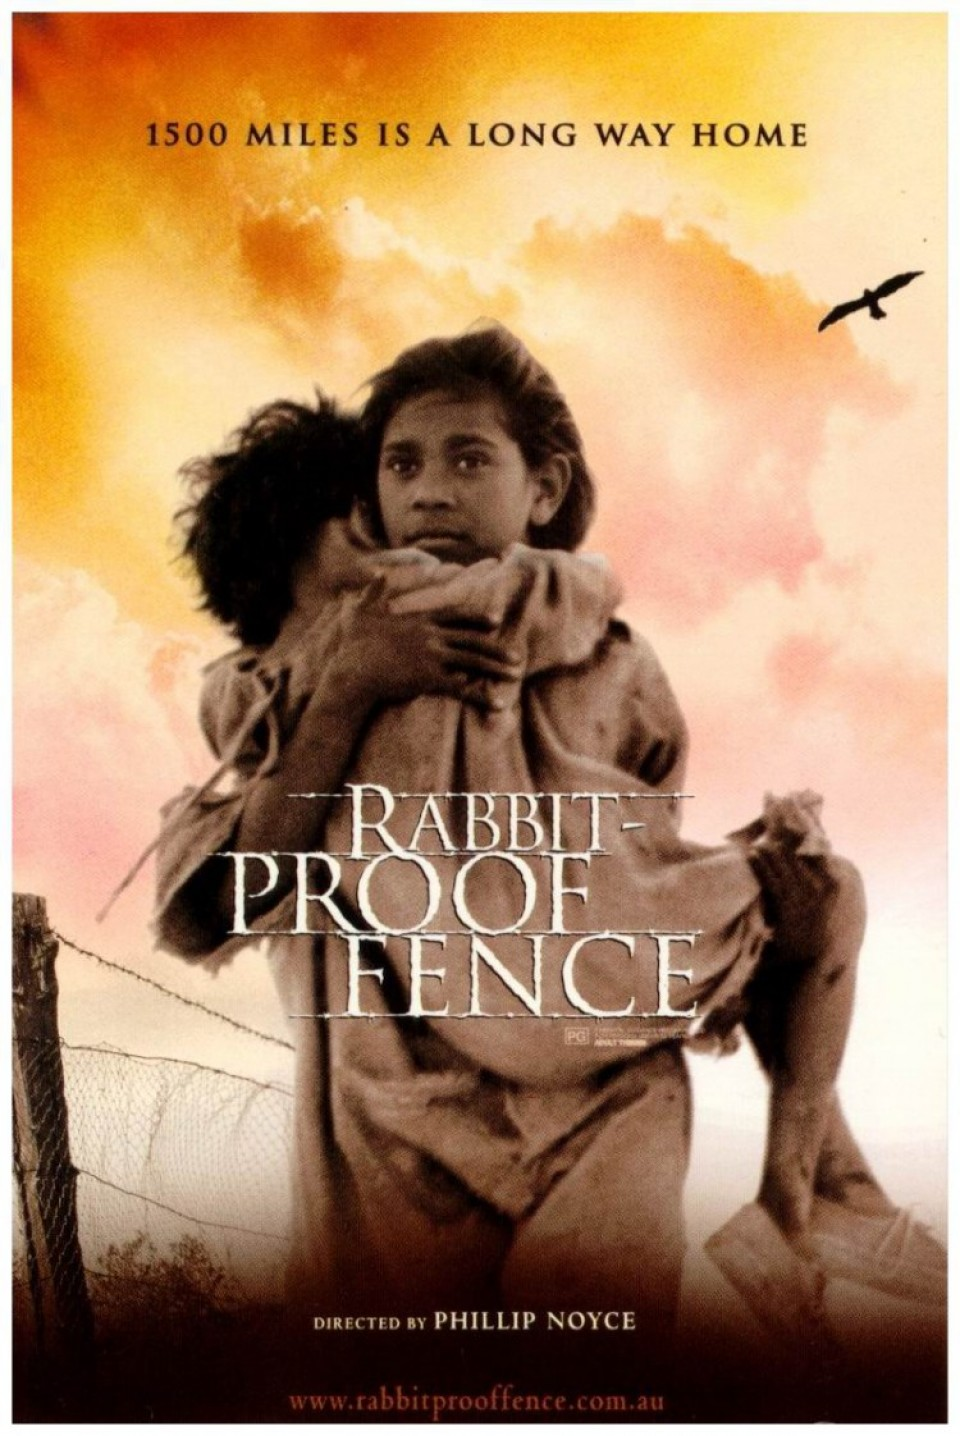 003 Rabbit Proof Fence Film Review Essay 1295772578 48 Top 960